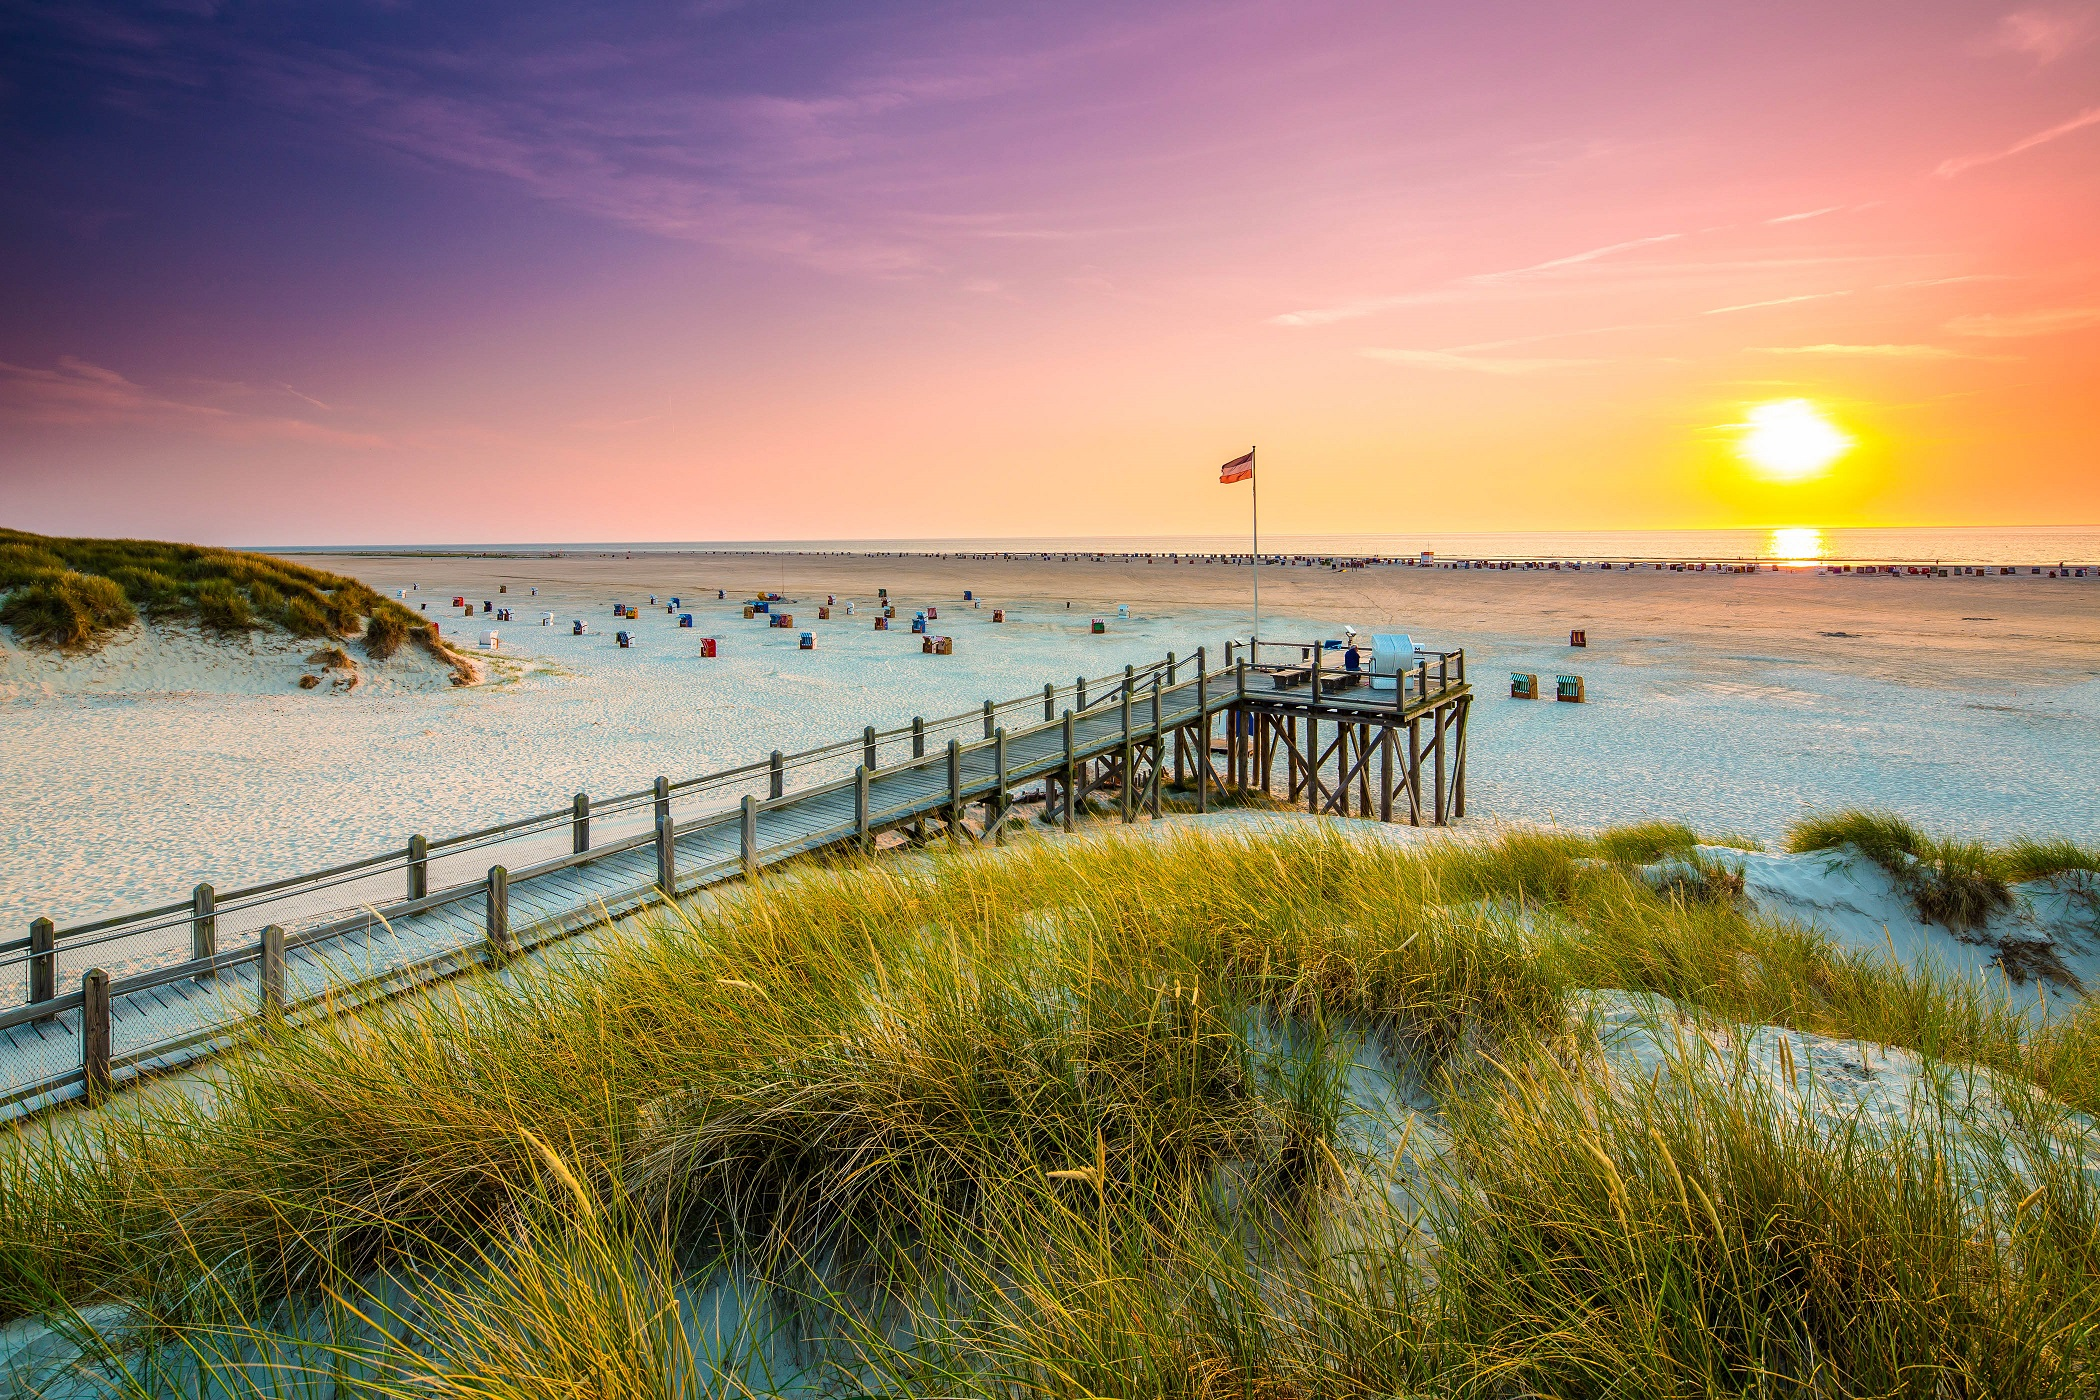 view-point-on-the-beach-of-amrum-istock_46128214_xlarge-2